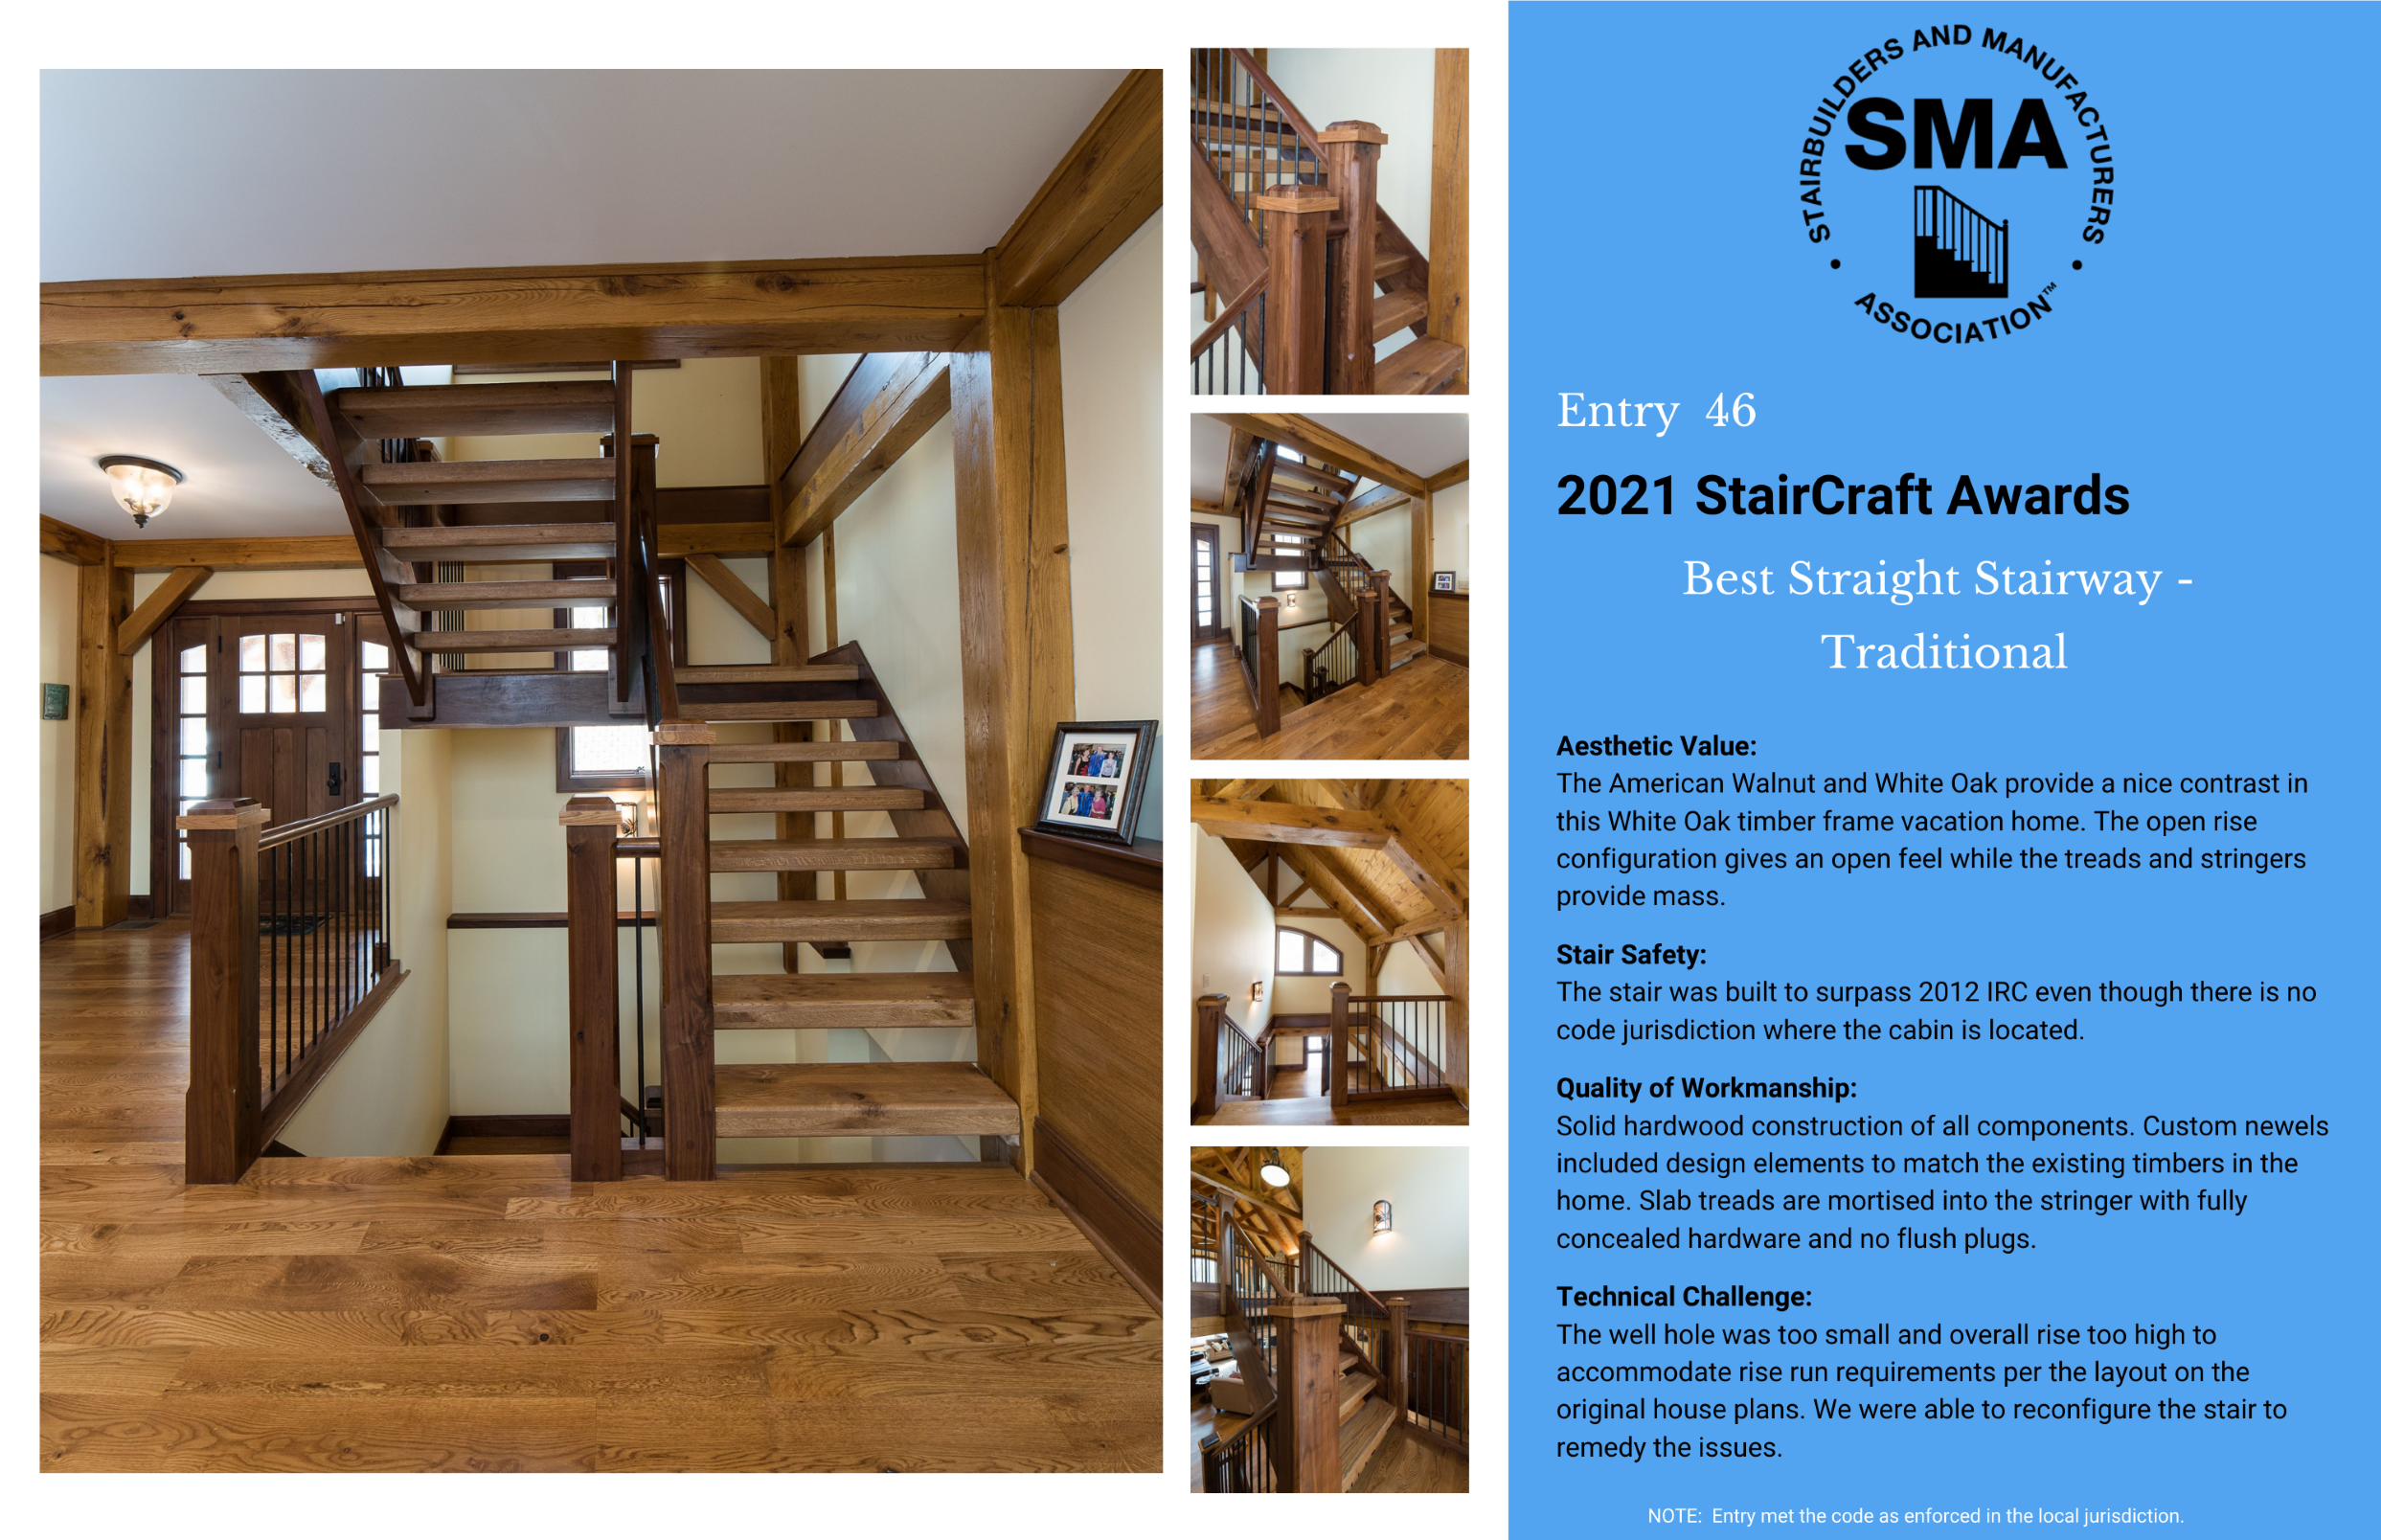 2021 StairCraft Awards Entry 46